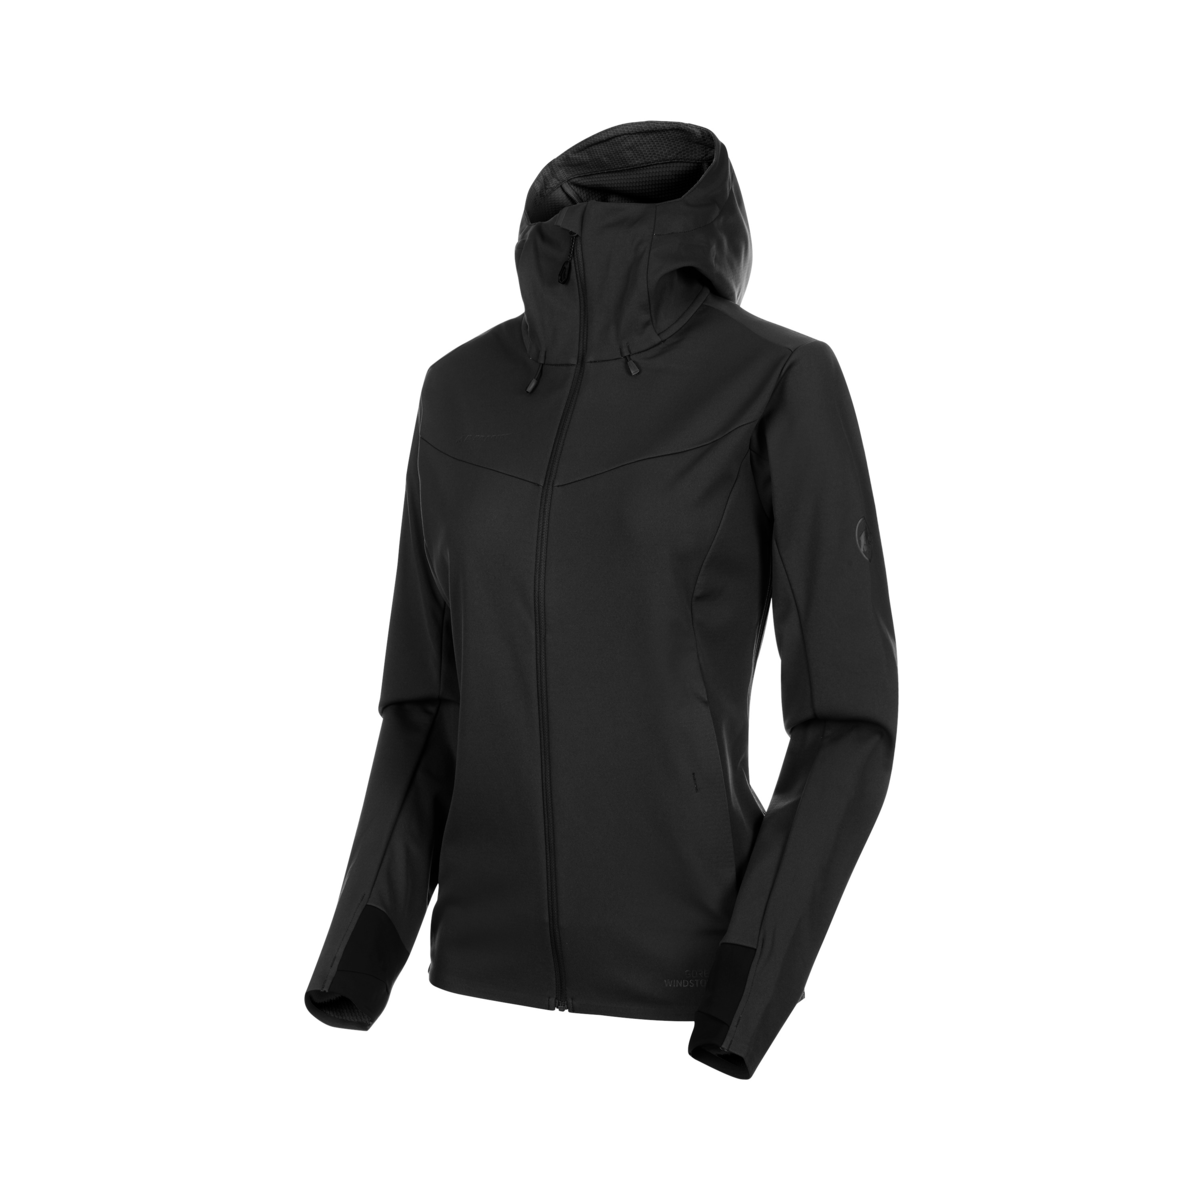 reputable site 807d5 6e5b6 Ultimate V SO Hooded Jacket Women